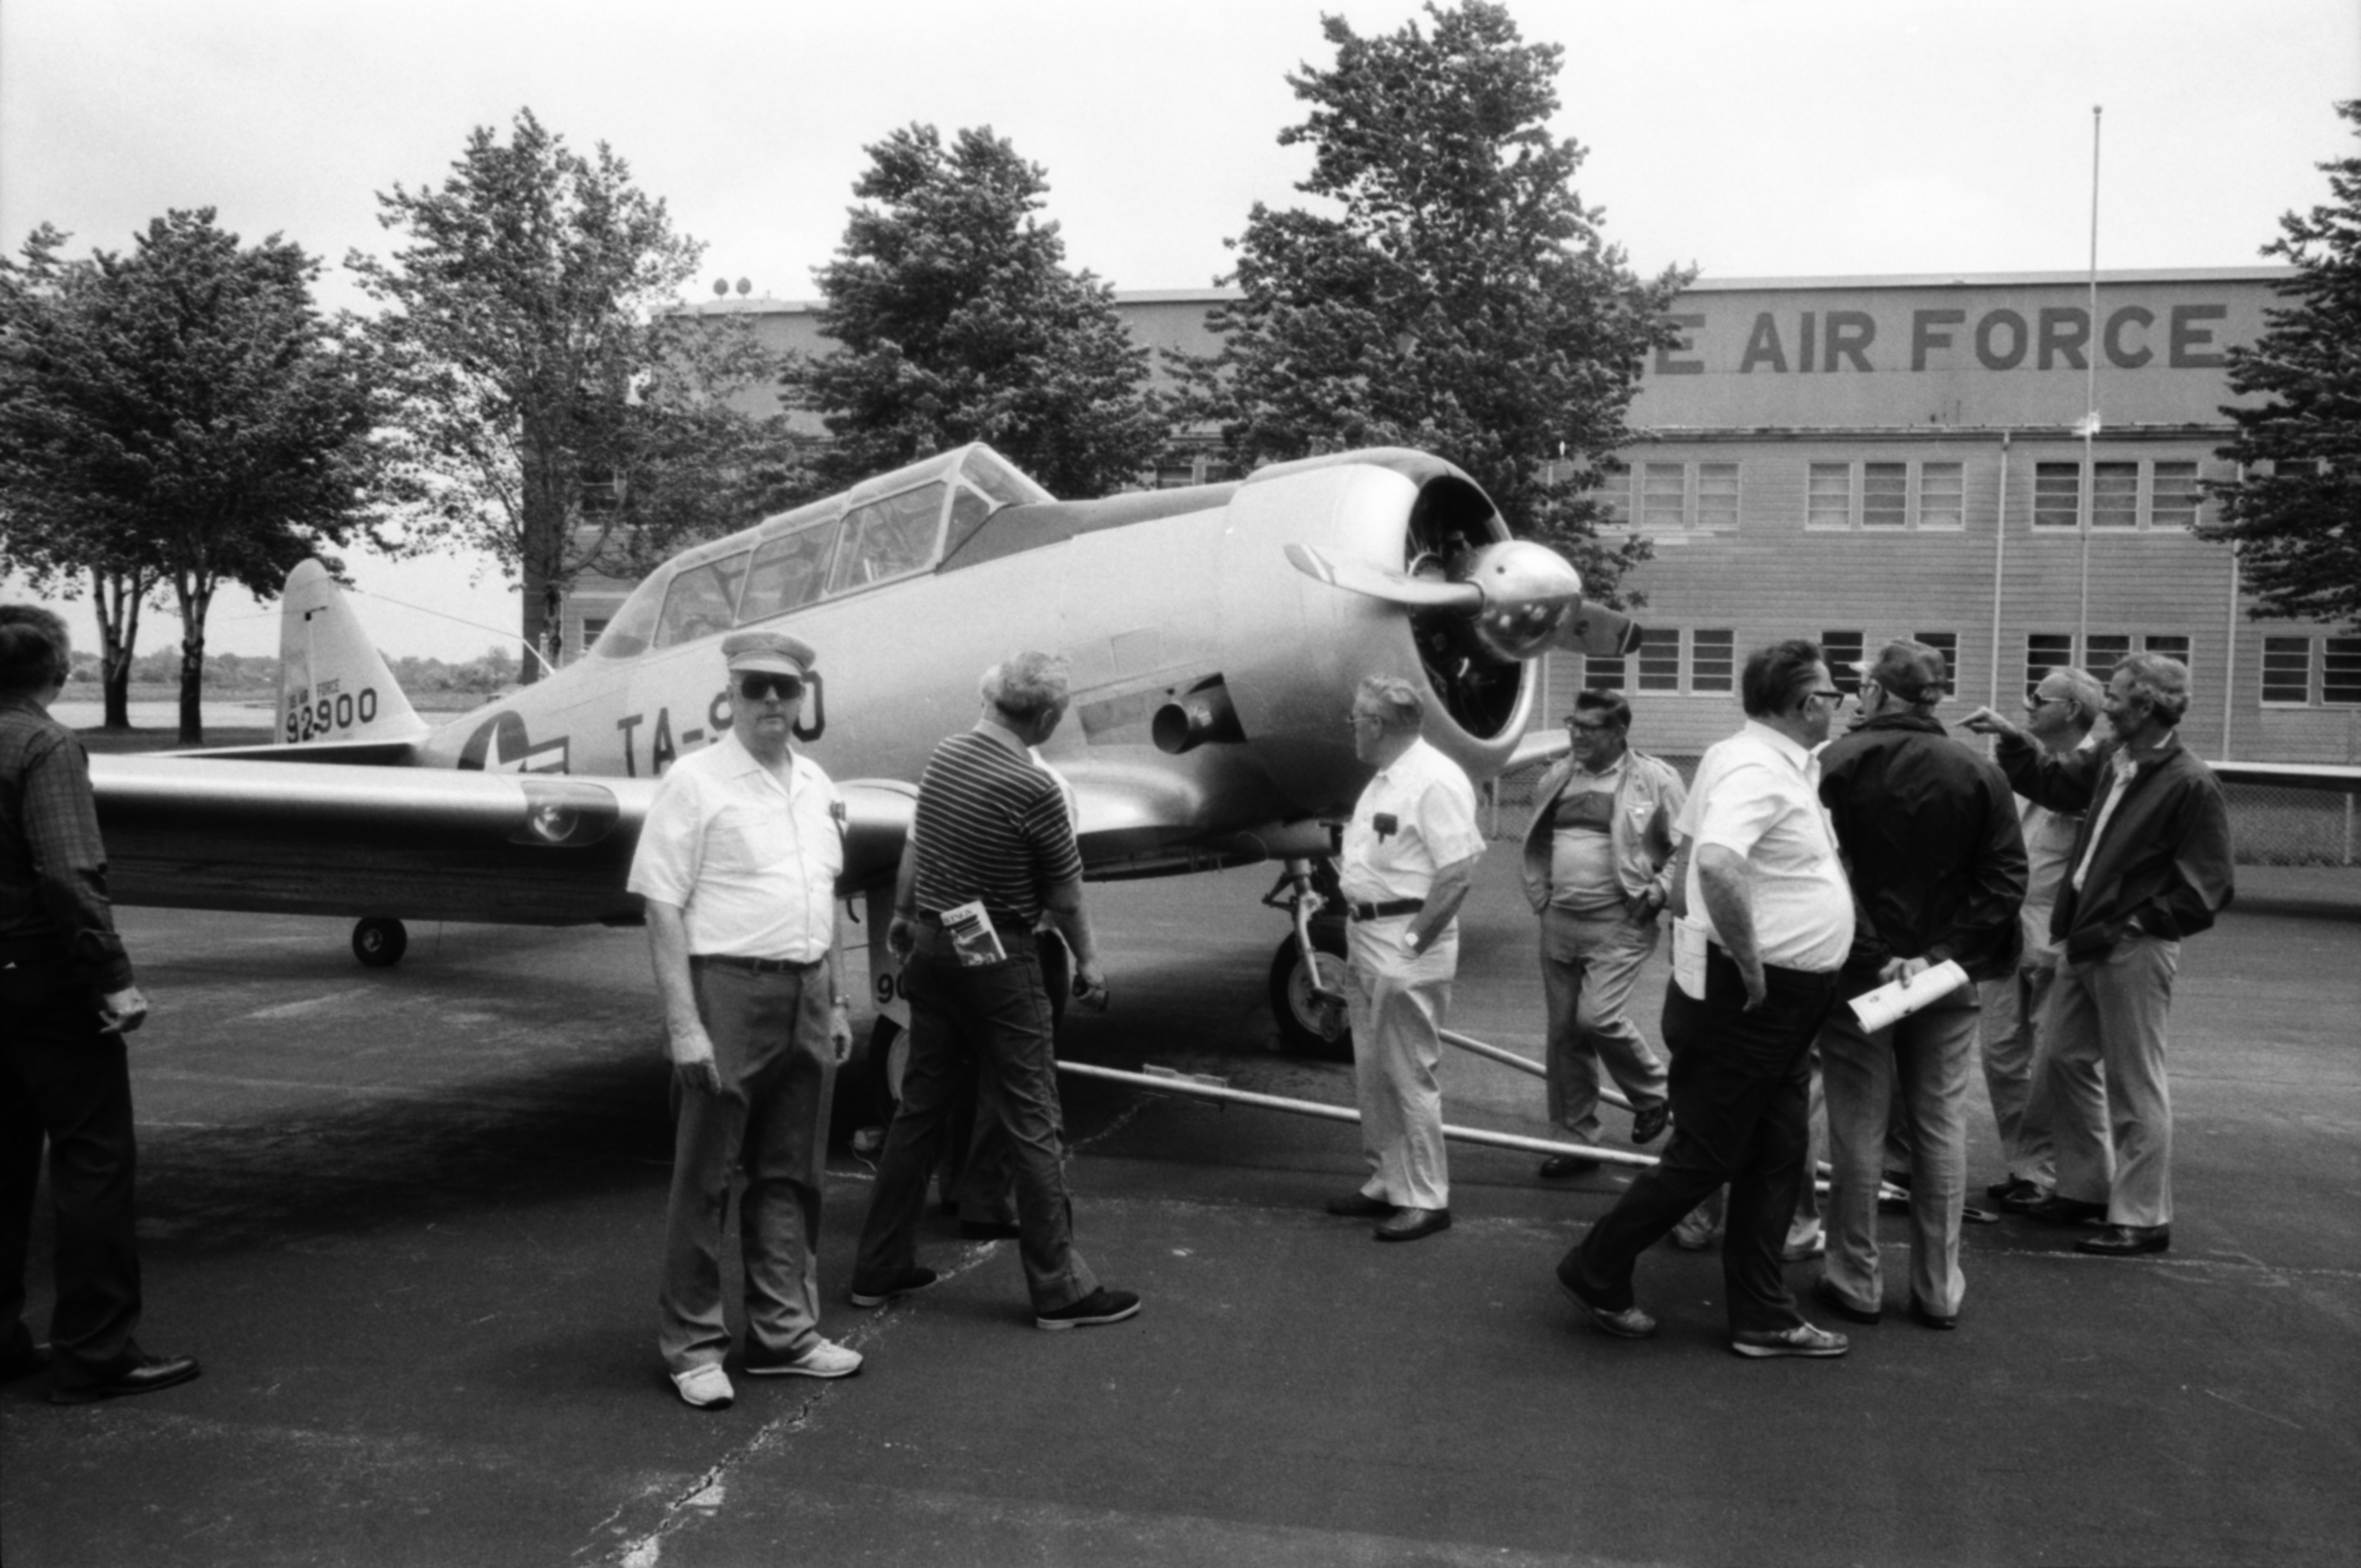 Former WWII POWs inspect a WWII-era plane, September 1986 image